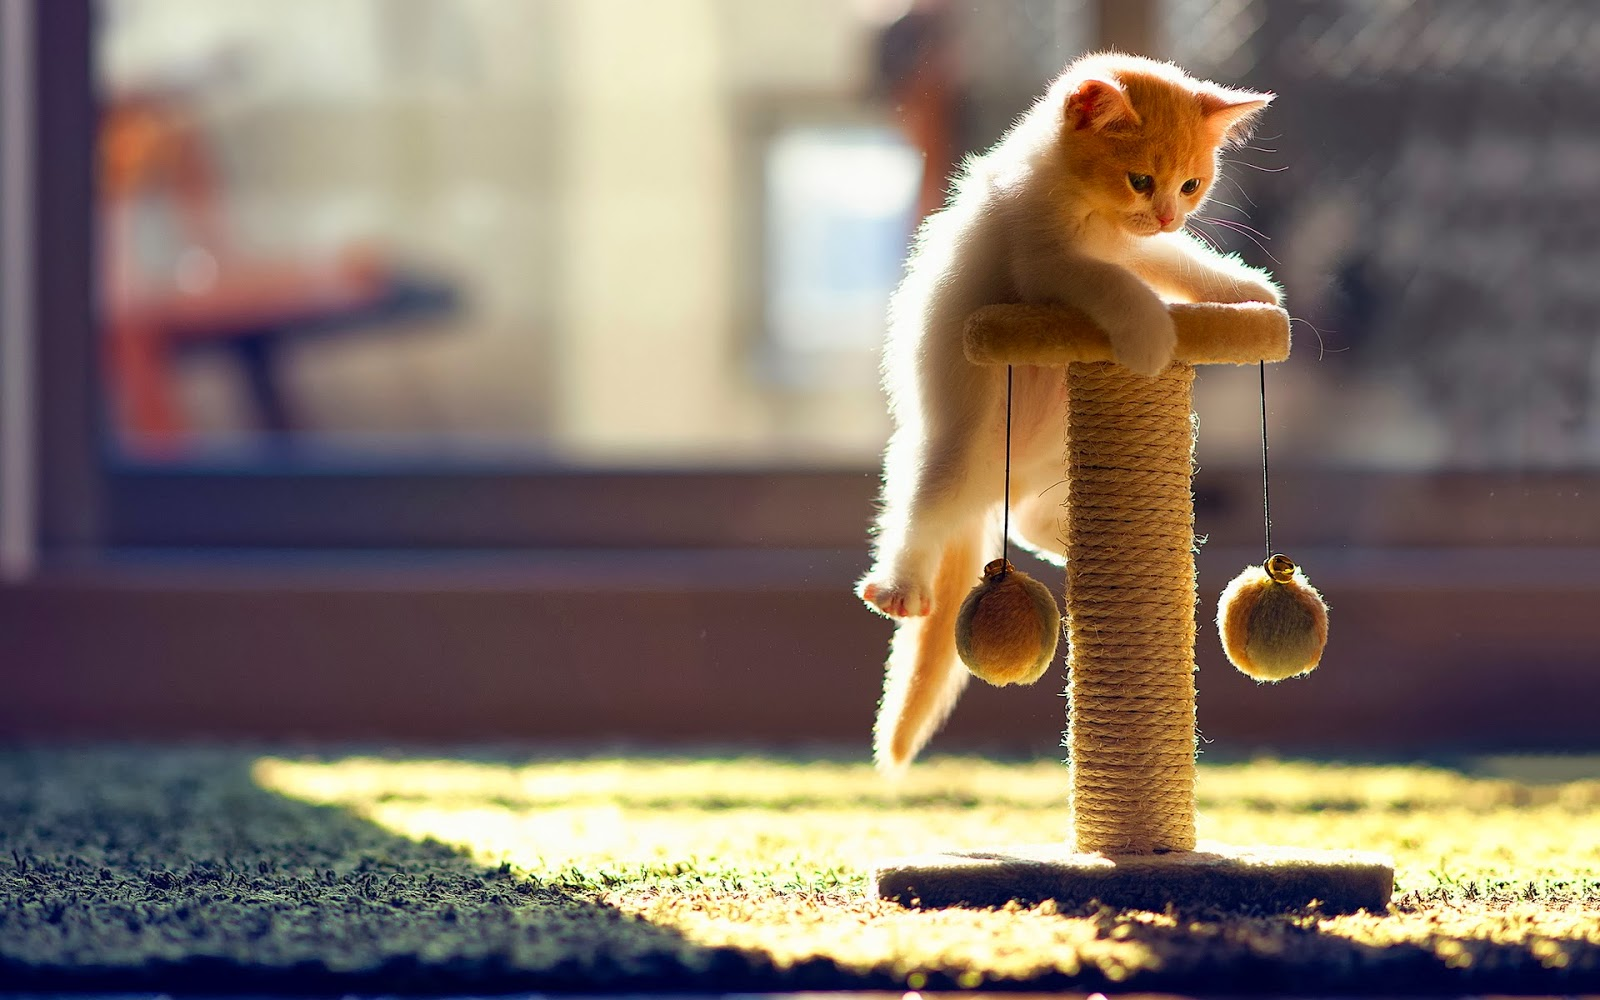 Funny Cat Hd Wallpapers Hd Wallpapers High Quality Wallpapers